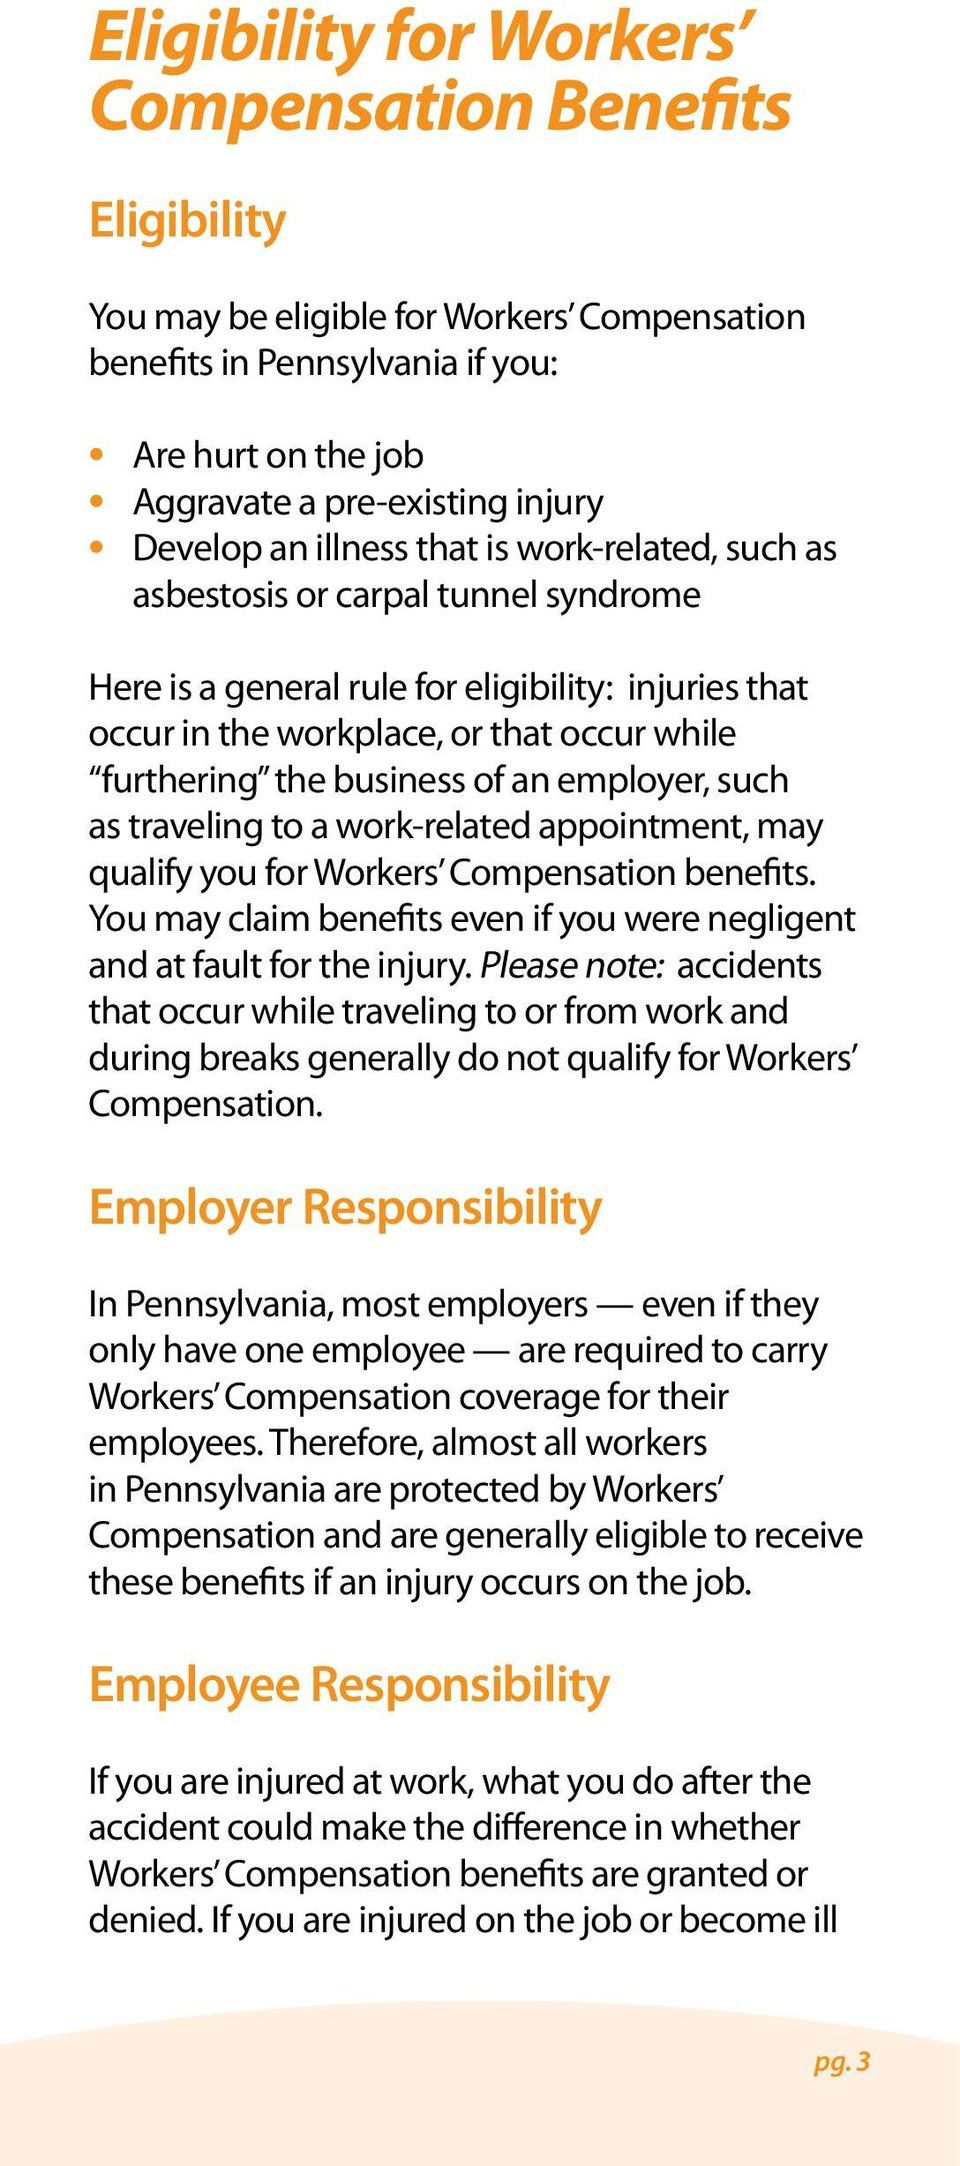 an employer, such as traveling to a work-related appointment, may qualify you for Workers Compensation benefits. You may claim benefits even if you were negligent and at fault for the injury.